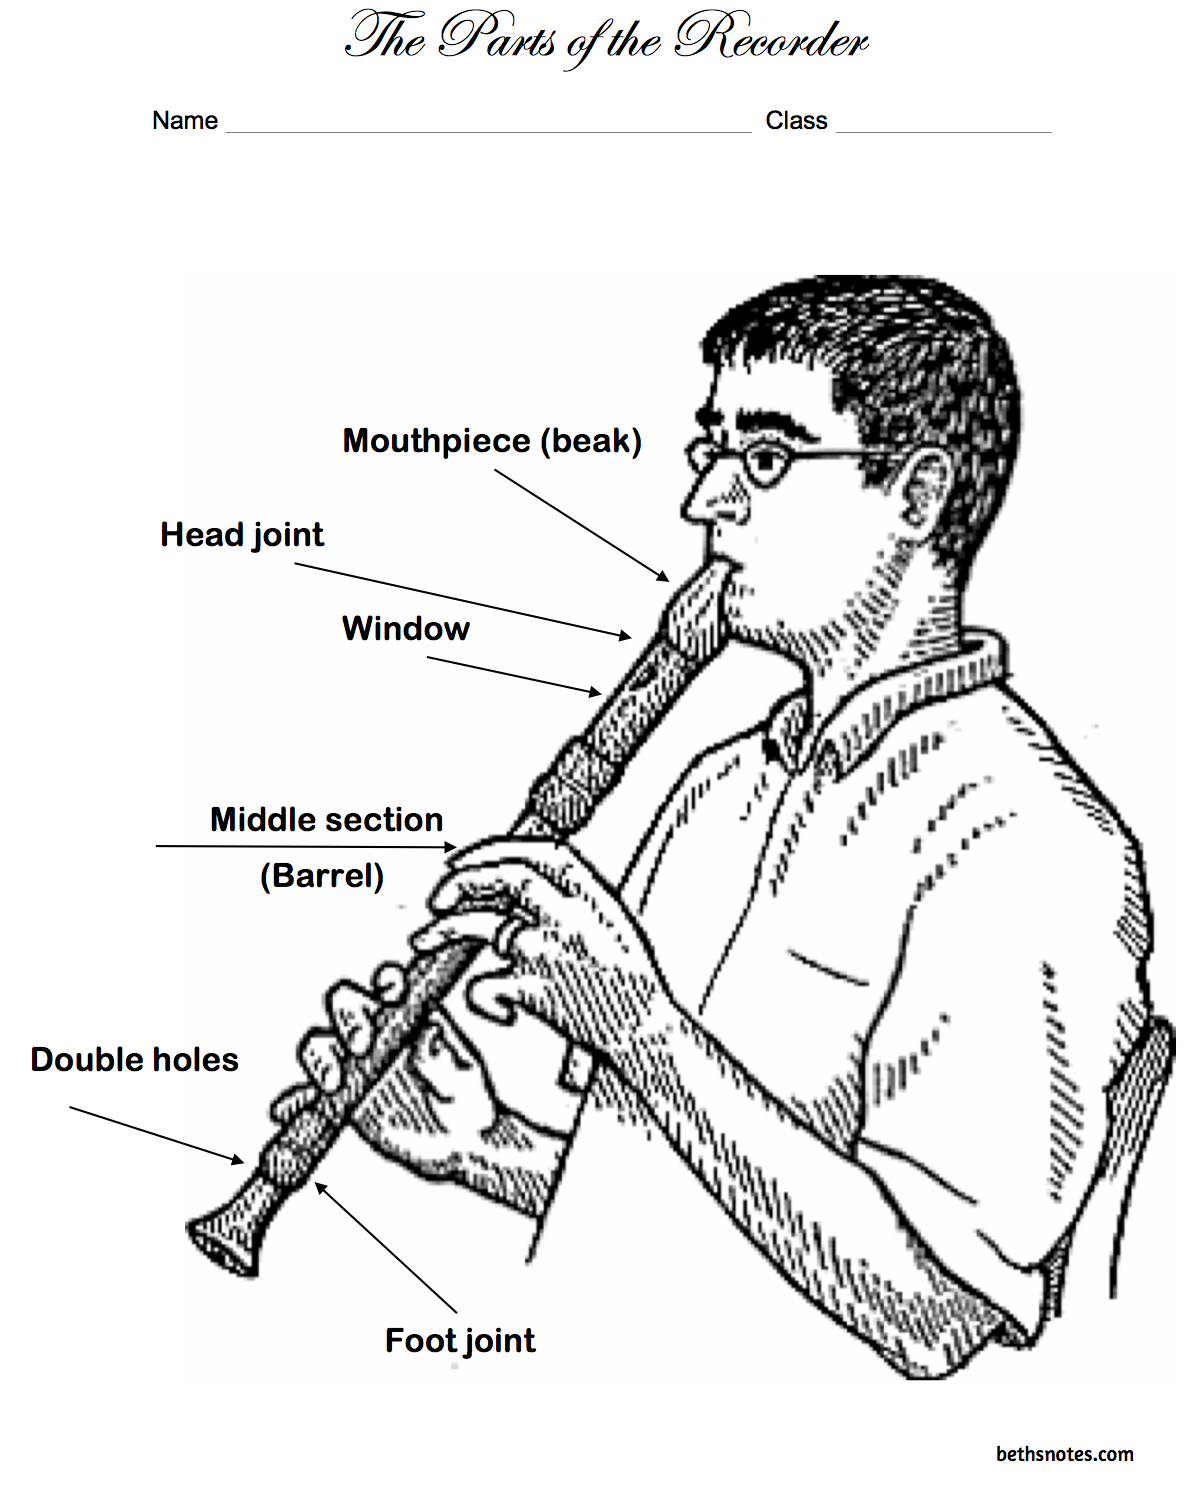 the best free recorder drawing images  download from 50 free drawings of recorder at getdrawings